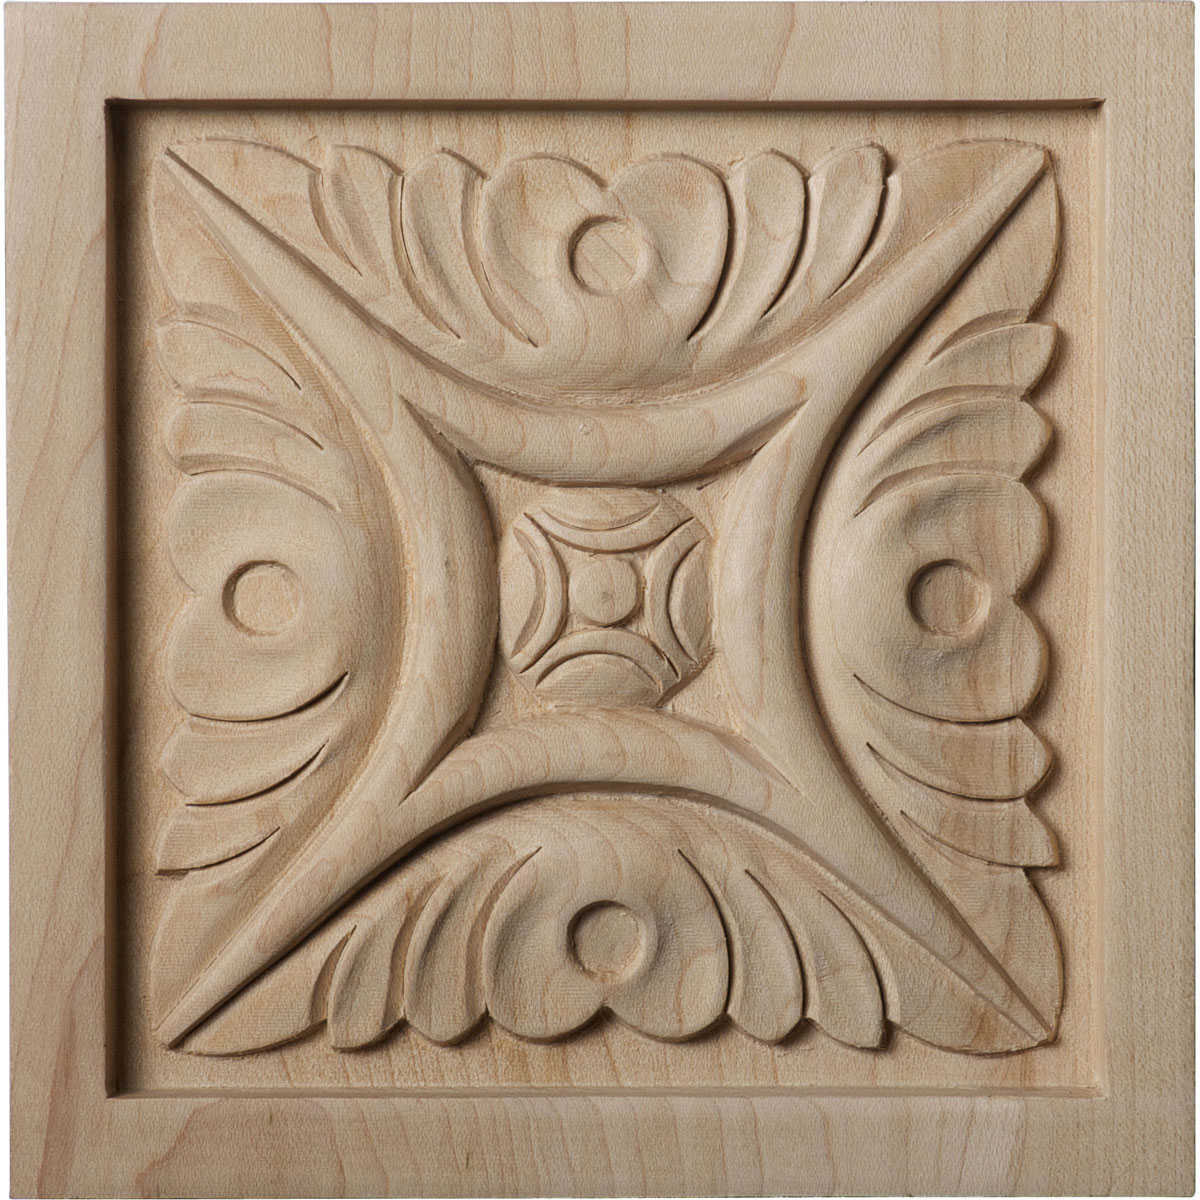 Ekena Millwork Middlesborough 3''H x 3''W x 5/8''D Small Rosette